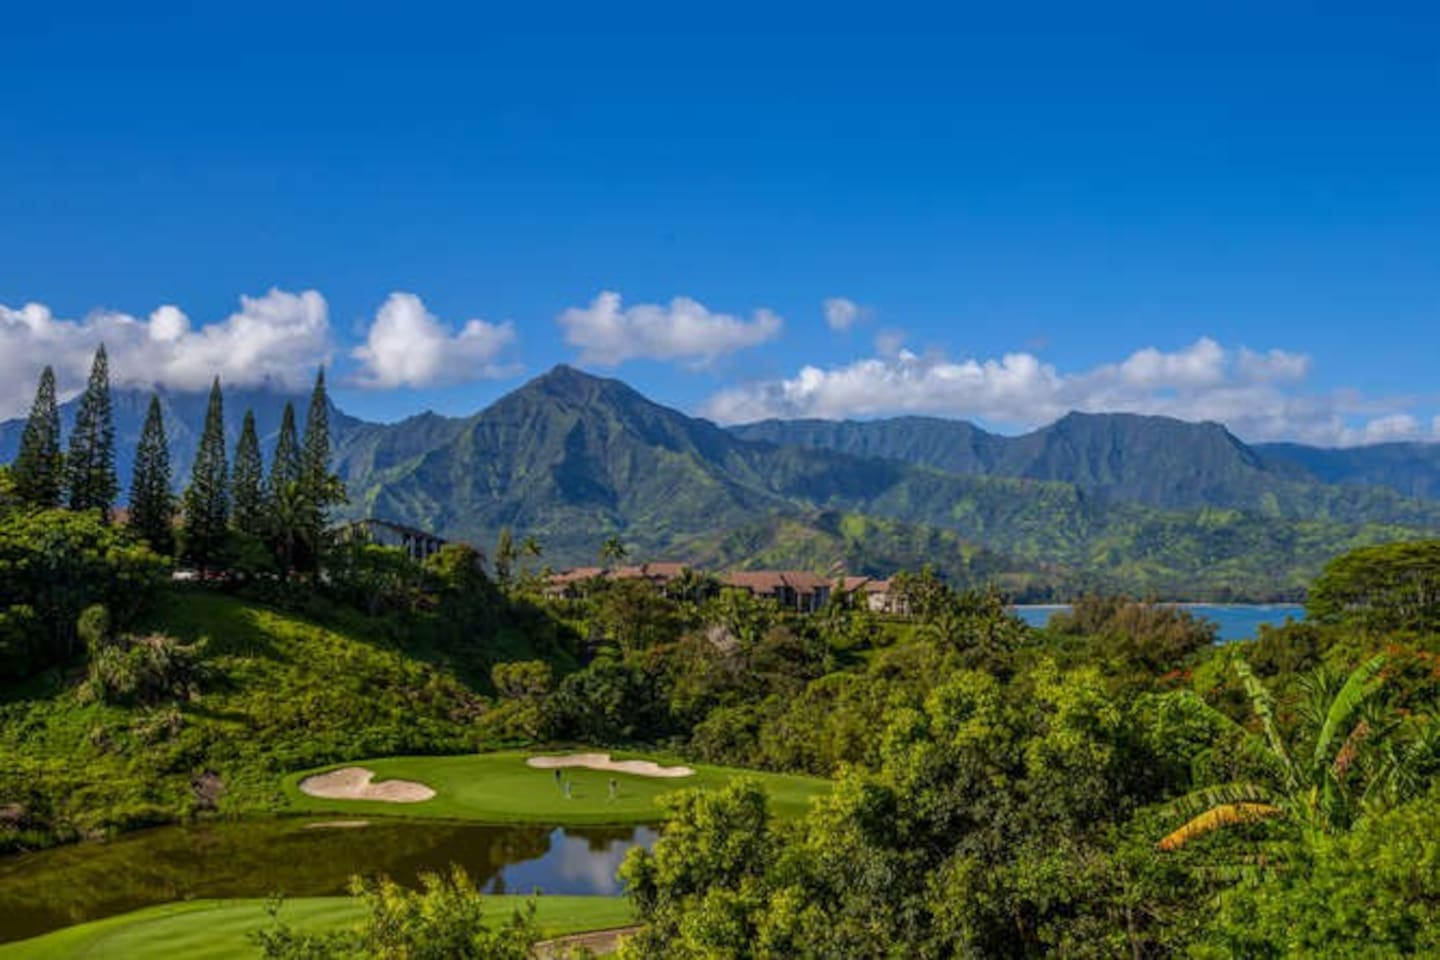 Amazing views of Hanalei Bay and the mountains